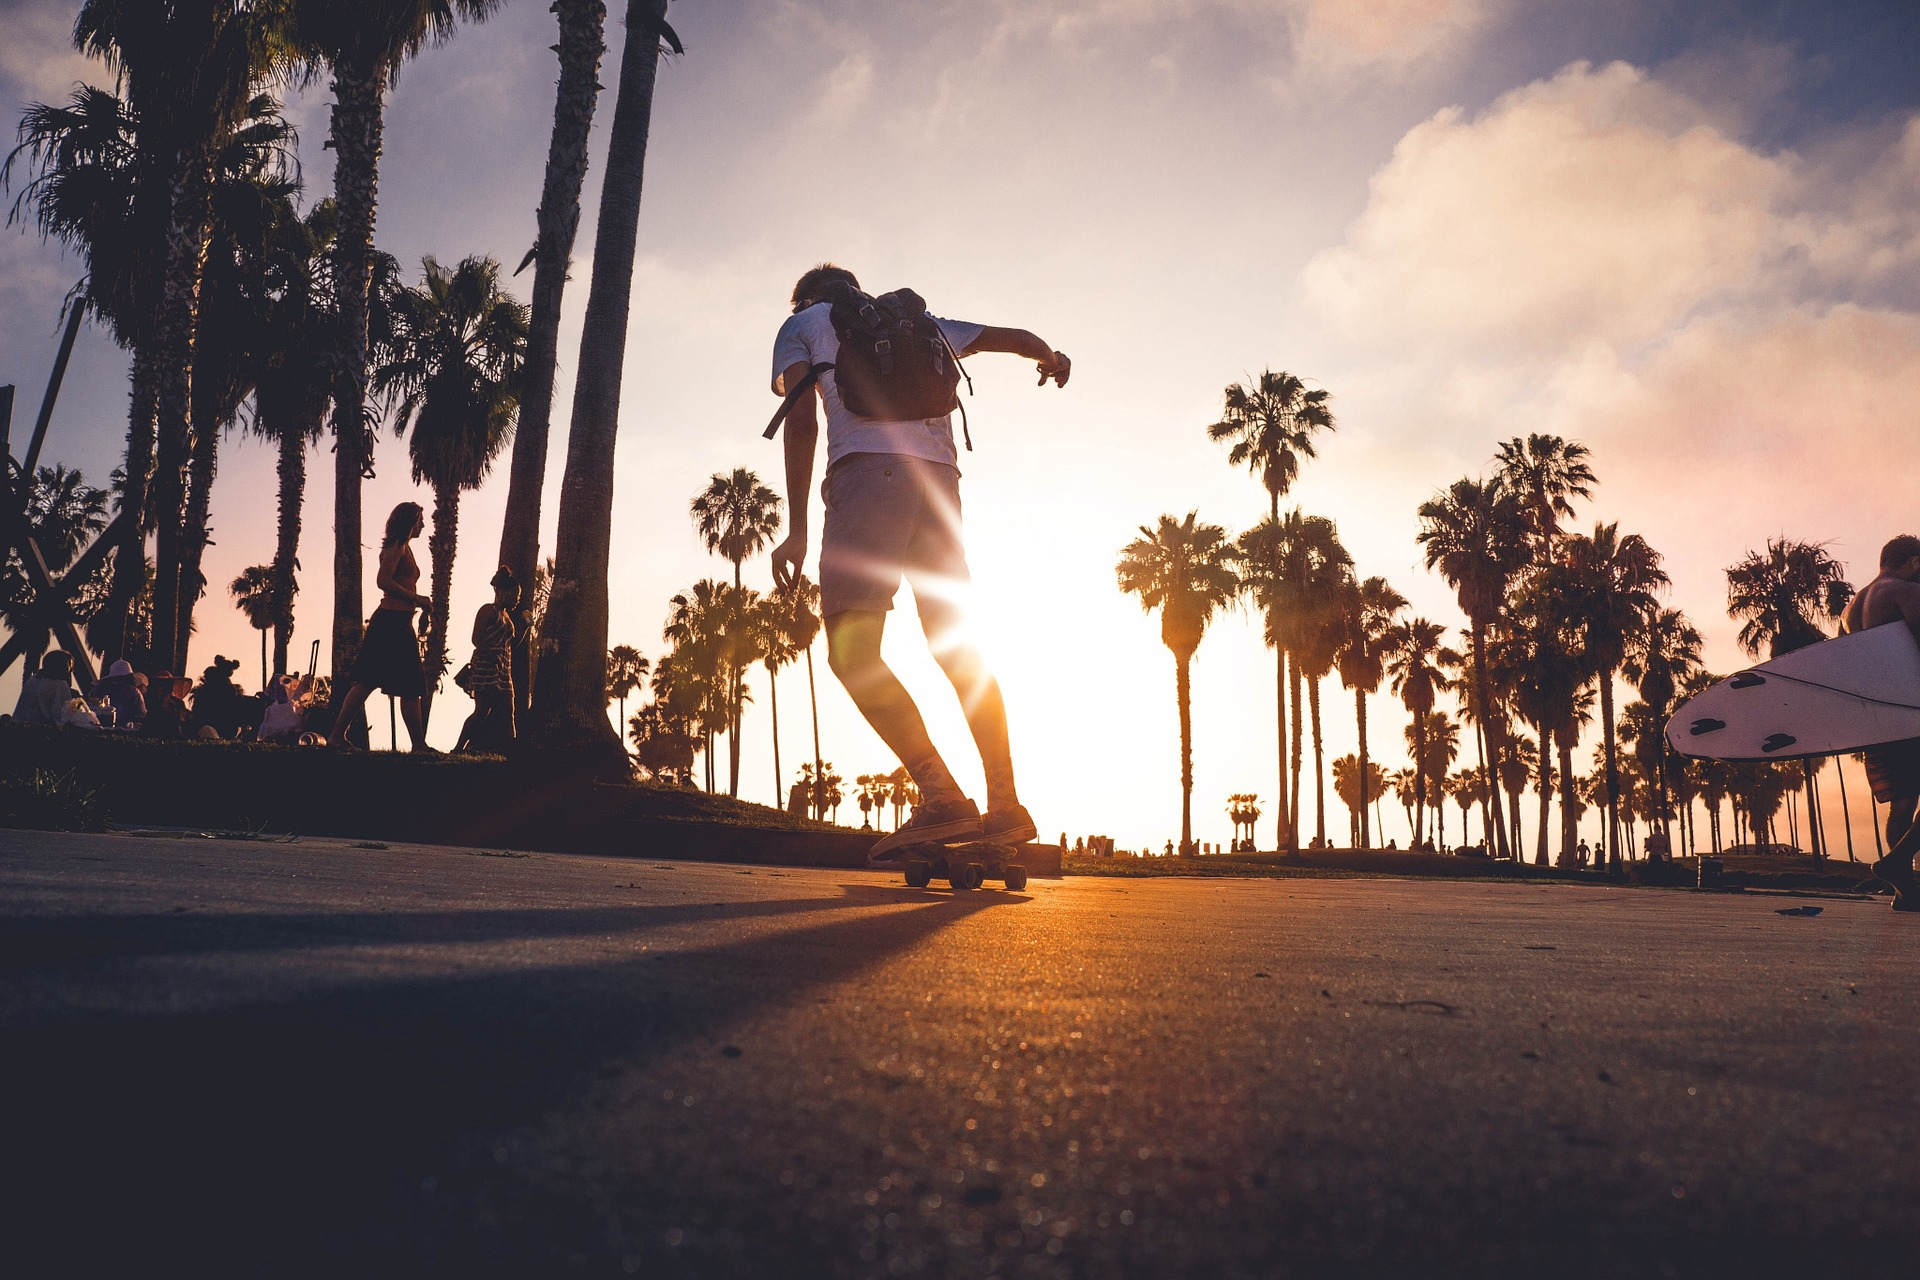 Skateboarder with a backpack on a beachside road with palm trees in the background. Several other people in the background sitting or walking by.